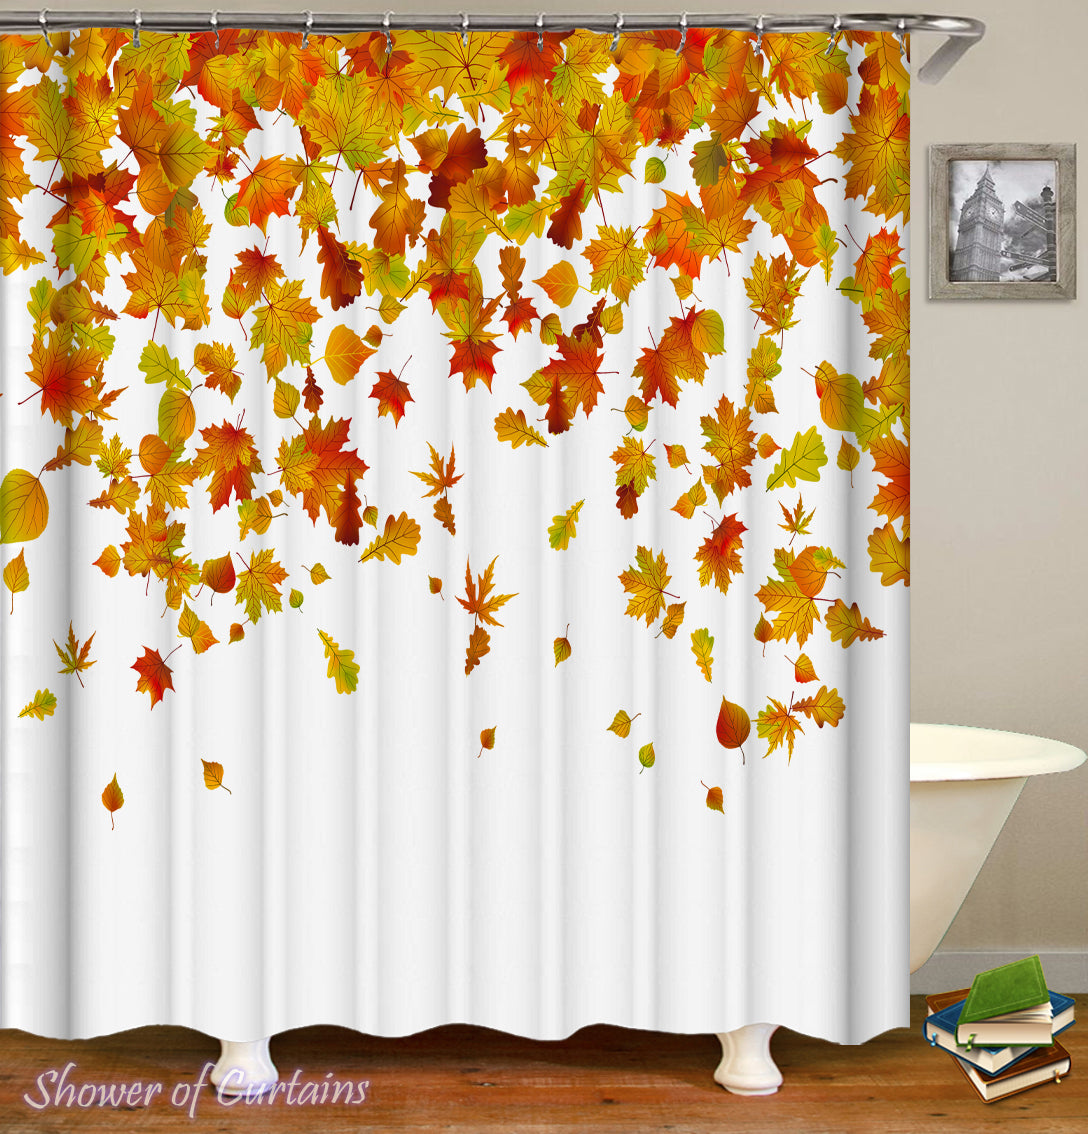 Autumn Leaves Shower Curtains Theme